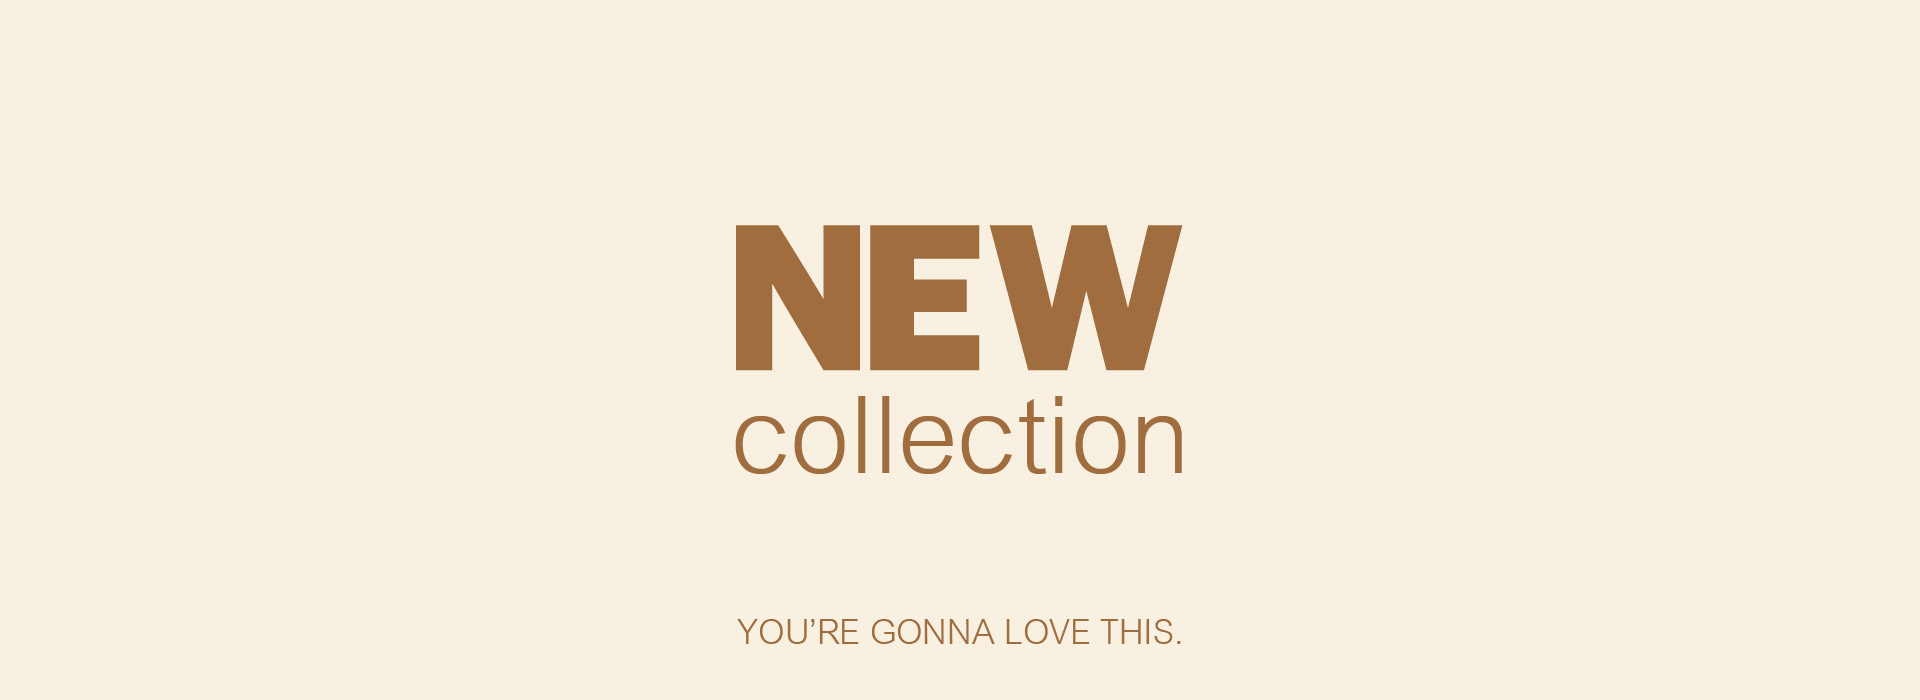 NEW-COLLECTION-MAIN-BANNER-01-1.jpg